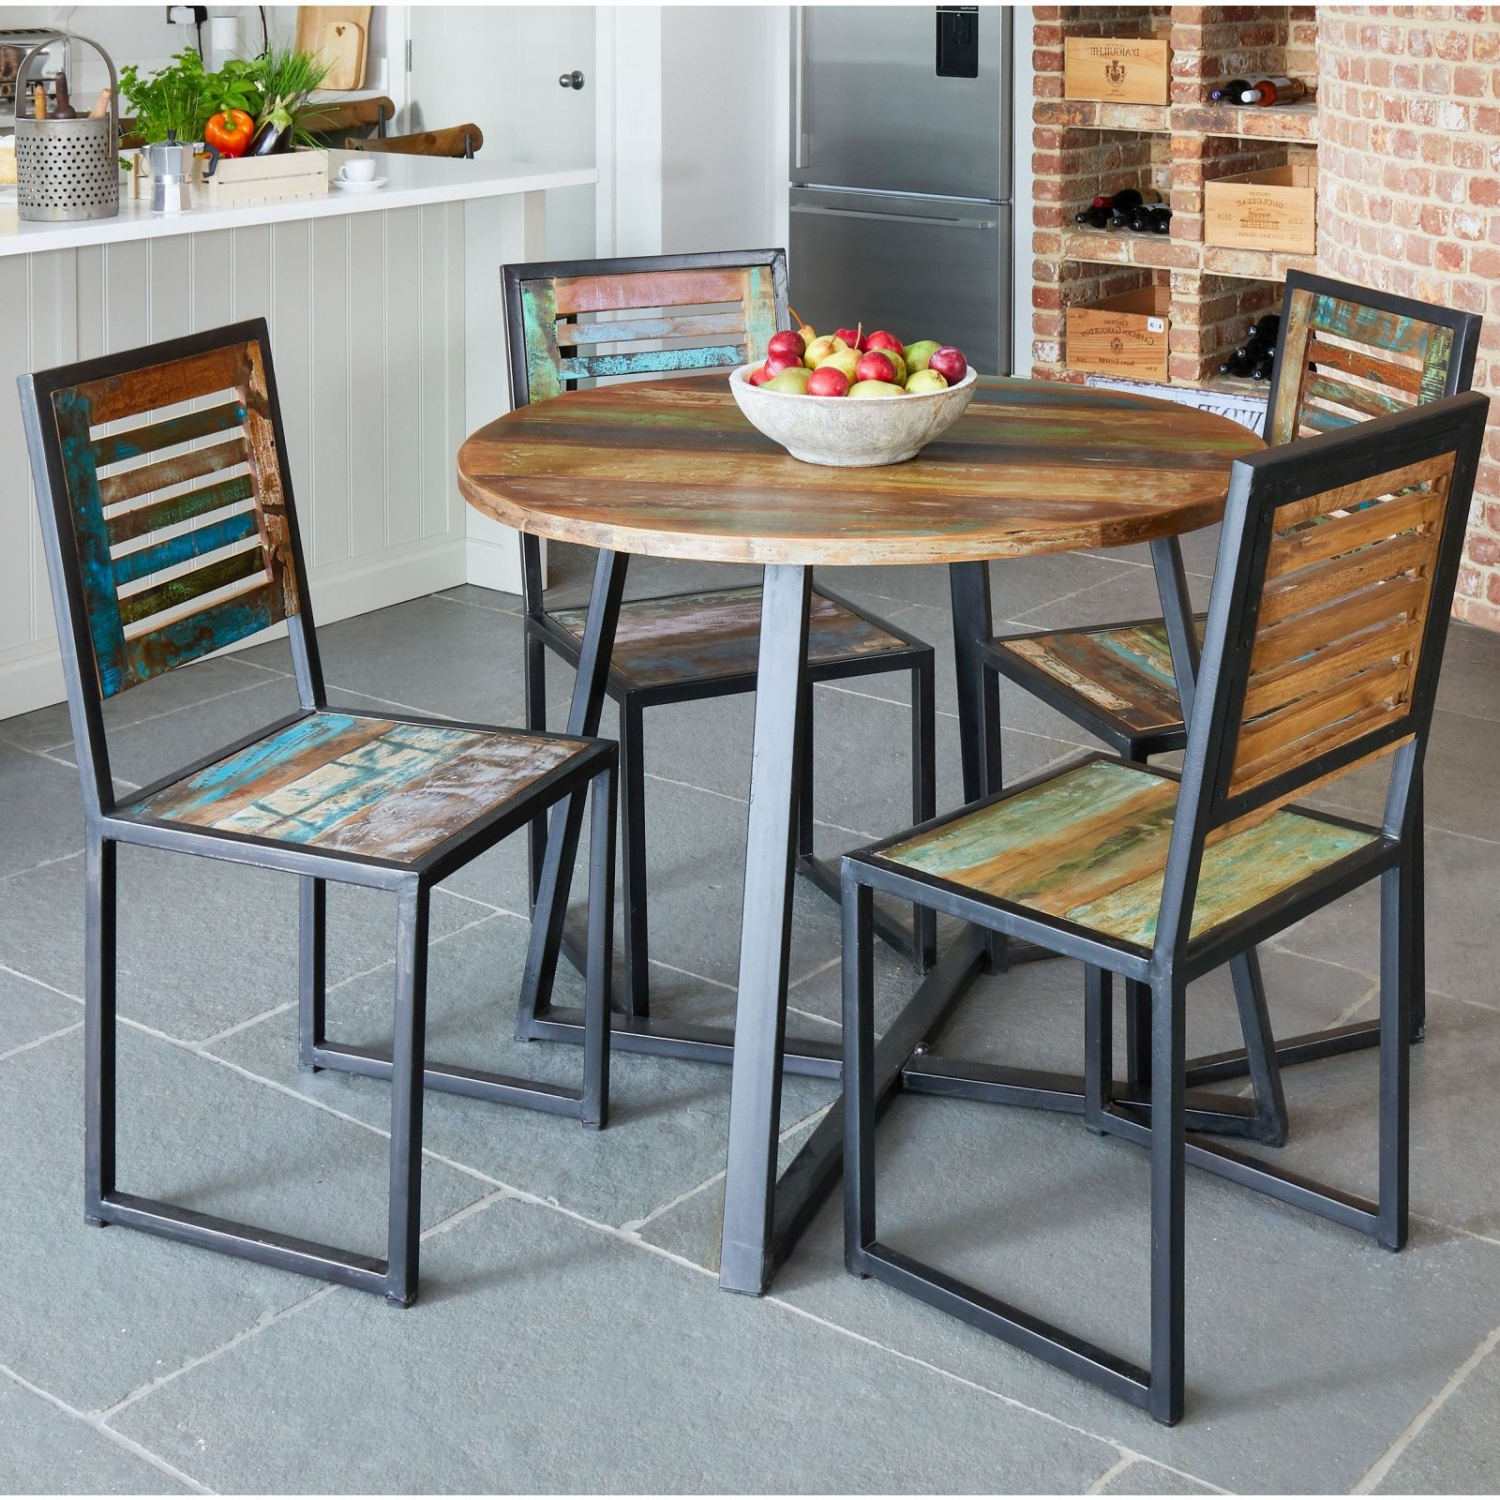 Details About Agra Reclaimed Wood Furniture Round Dining Table in Well-known Small Round Dining Tables With Reclaimed Wood